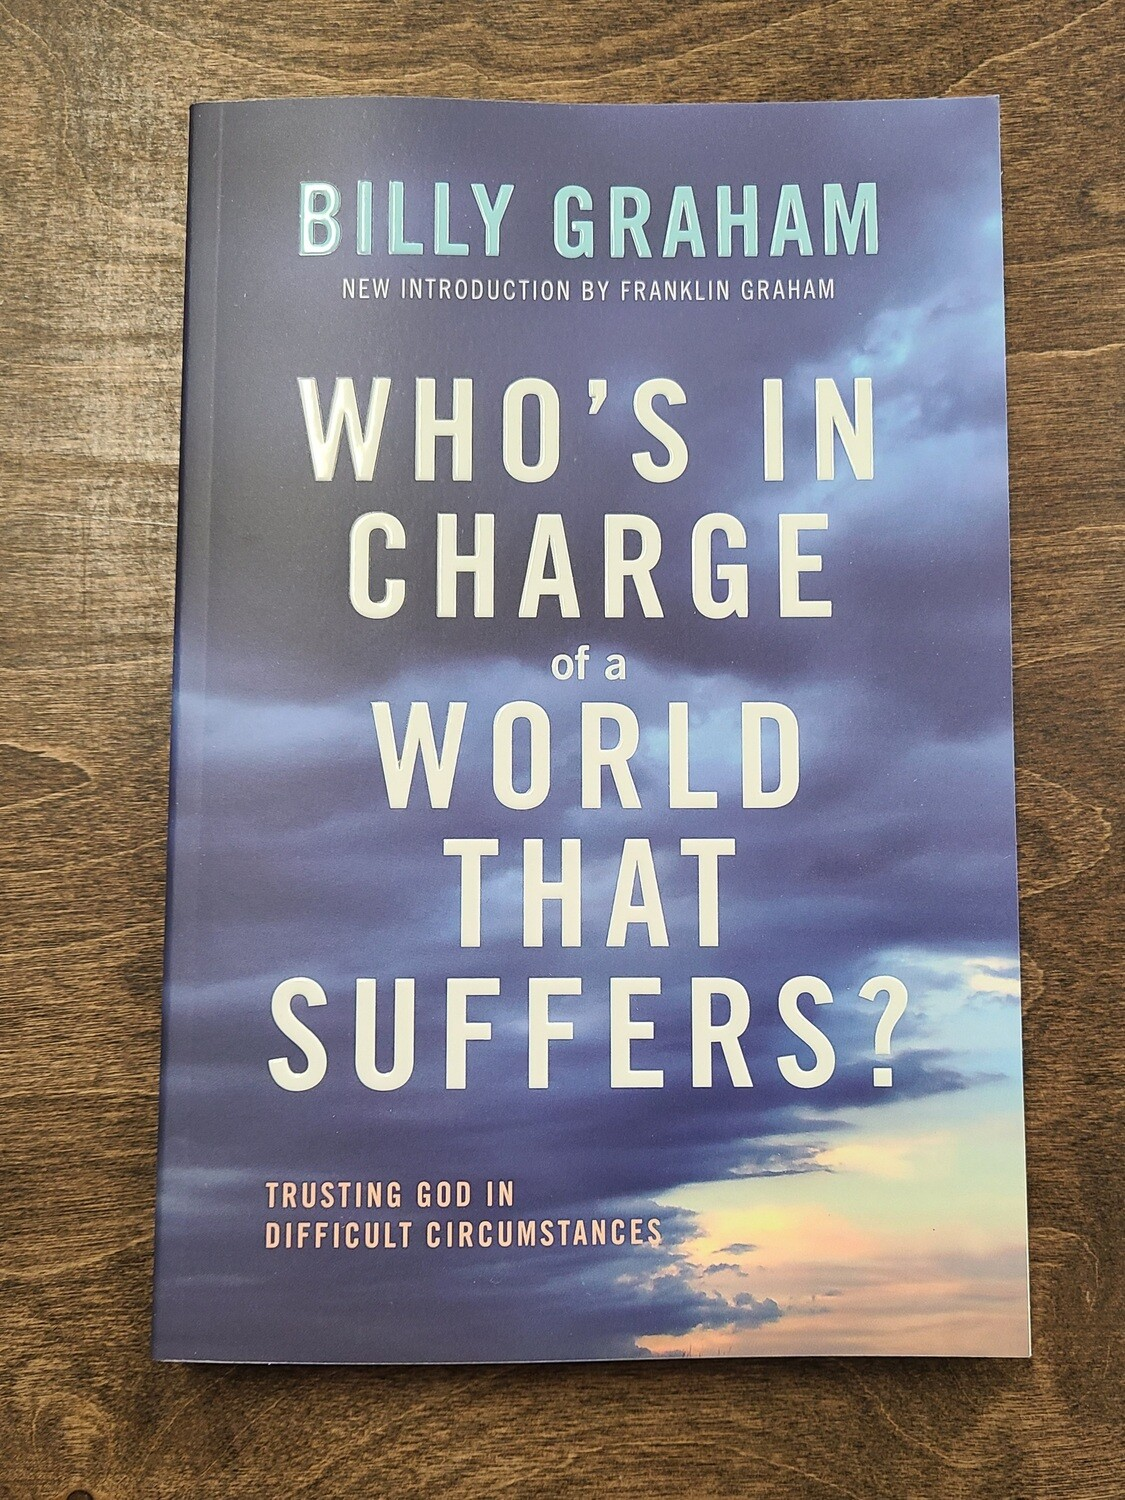 Who's in Charge of a World that Suffers?: Trusting God in Difficult Circumstances by Billy Graham